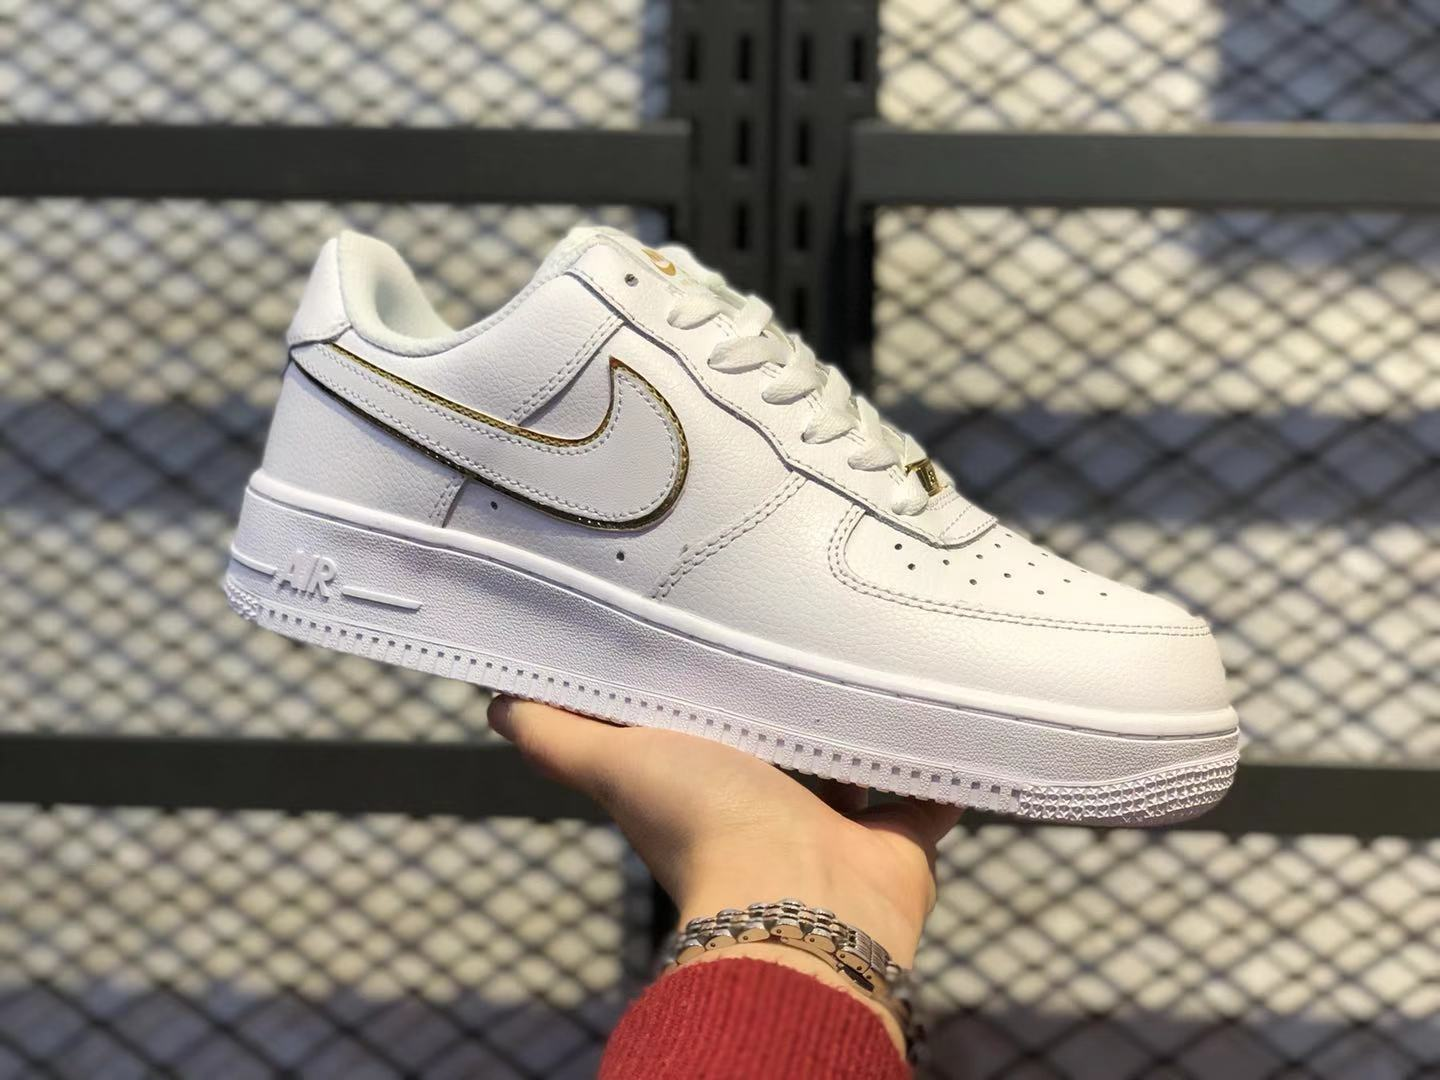 Nike Air Force 1 Low White/Gold Casual Shoes AO2132-102 For Online Sale